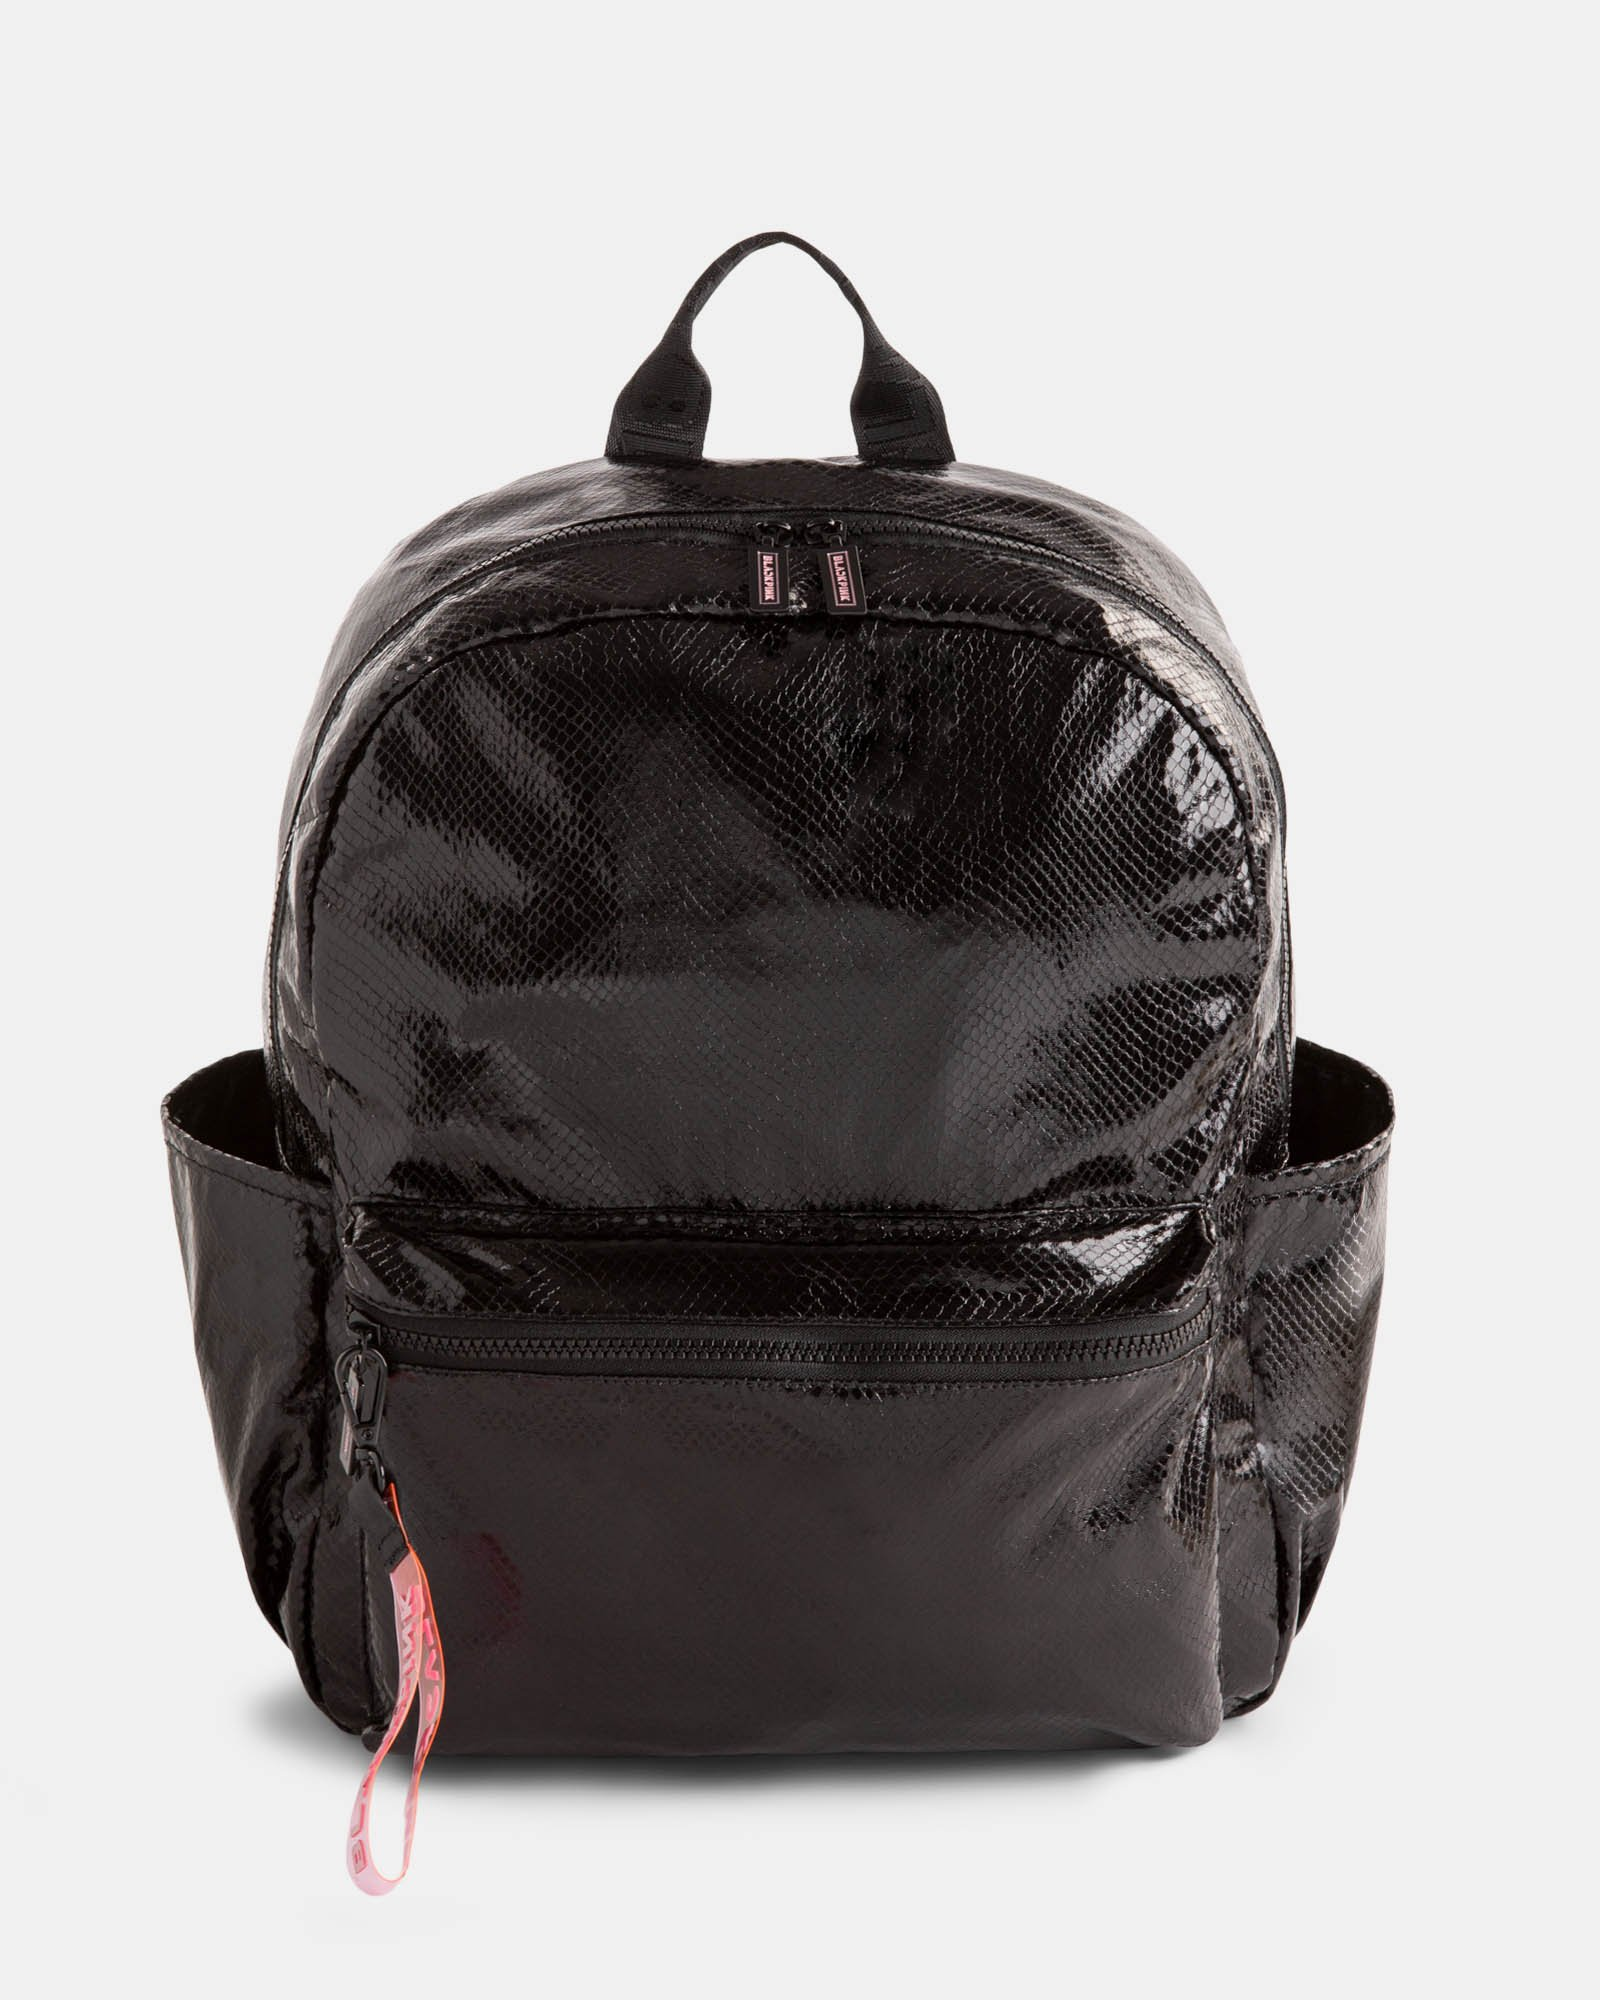 BLACKPINK - Scaled Up Collection - Backpack with Interior padded pocket ideal to store a laptop (up to 15.6 inches) and most tablets - Black - BLACKPINK - Zoom